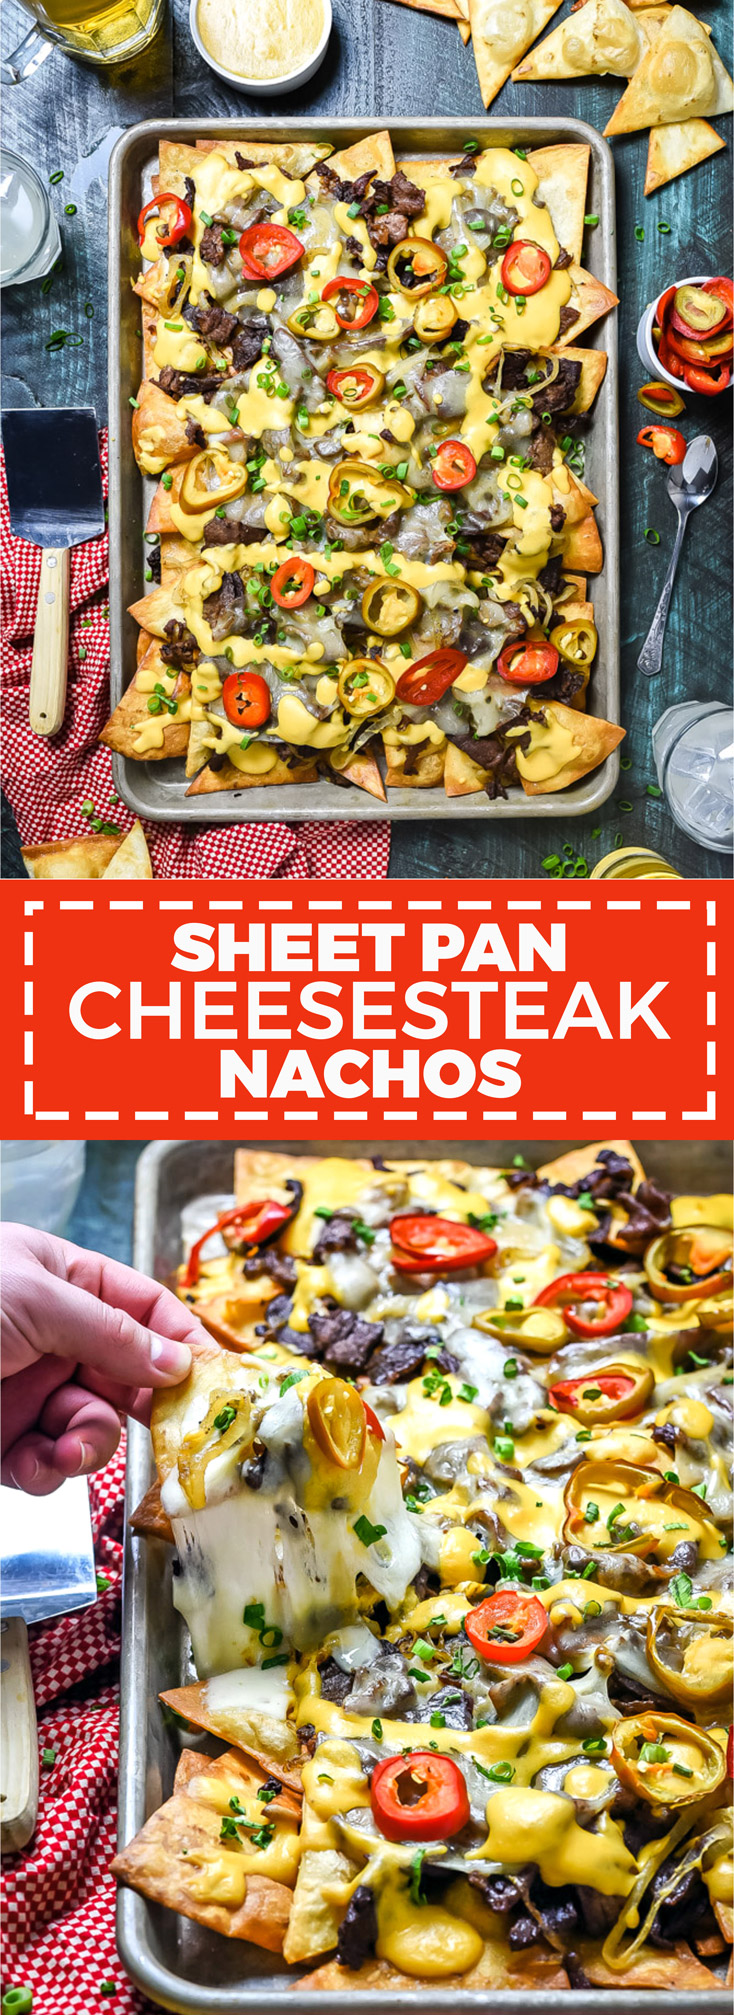 Sheet Pan Cheesesteak Nachos. Inspired by Philadelphia's most well-known sandwich, these nachos feature flour tortilla chips, thinly shaved steak, sauteed onions, hot cherry peppers, provolone cheese, and cheese sauce. | hostthetoast.com